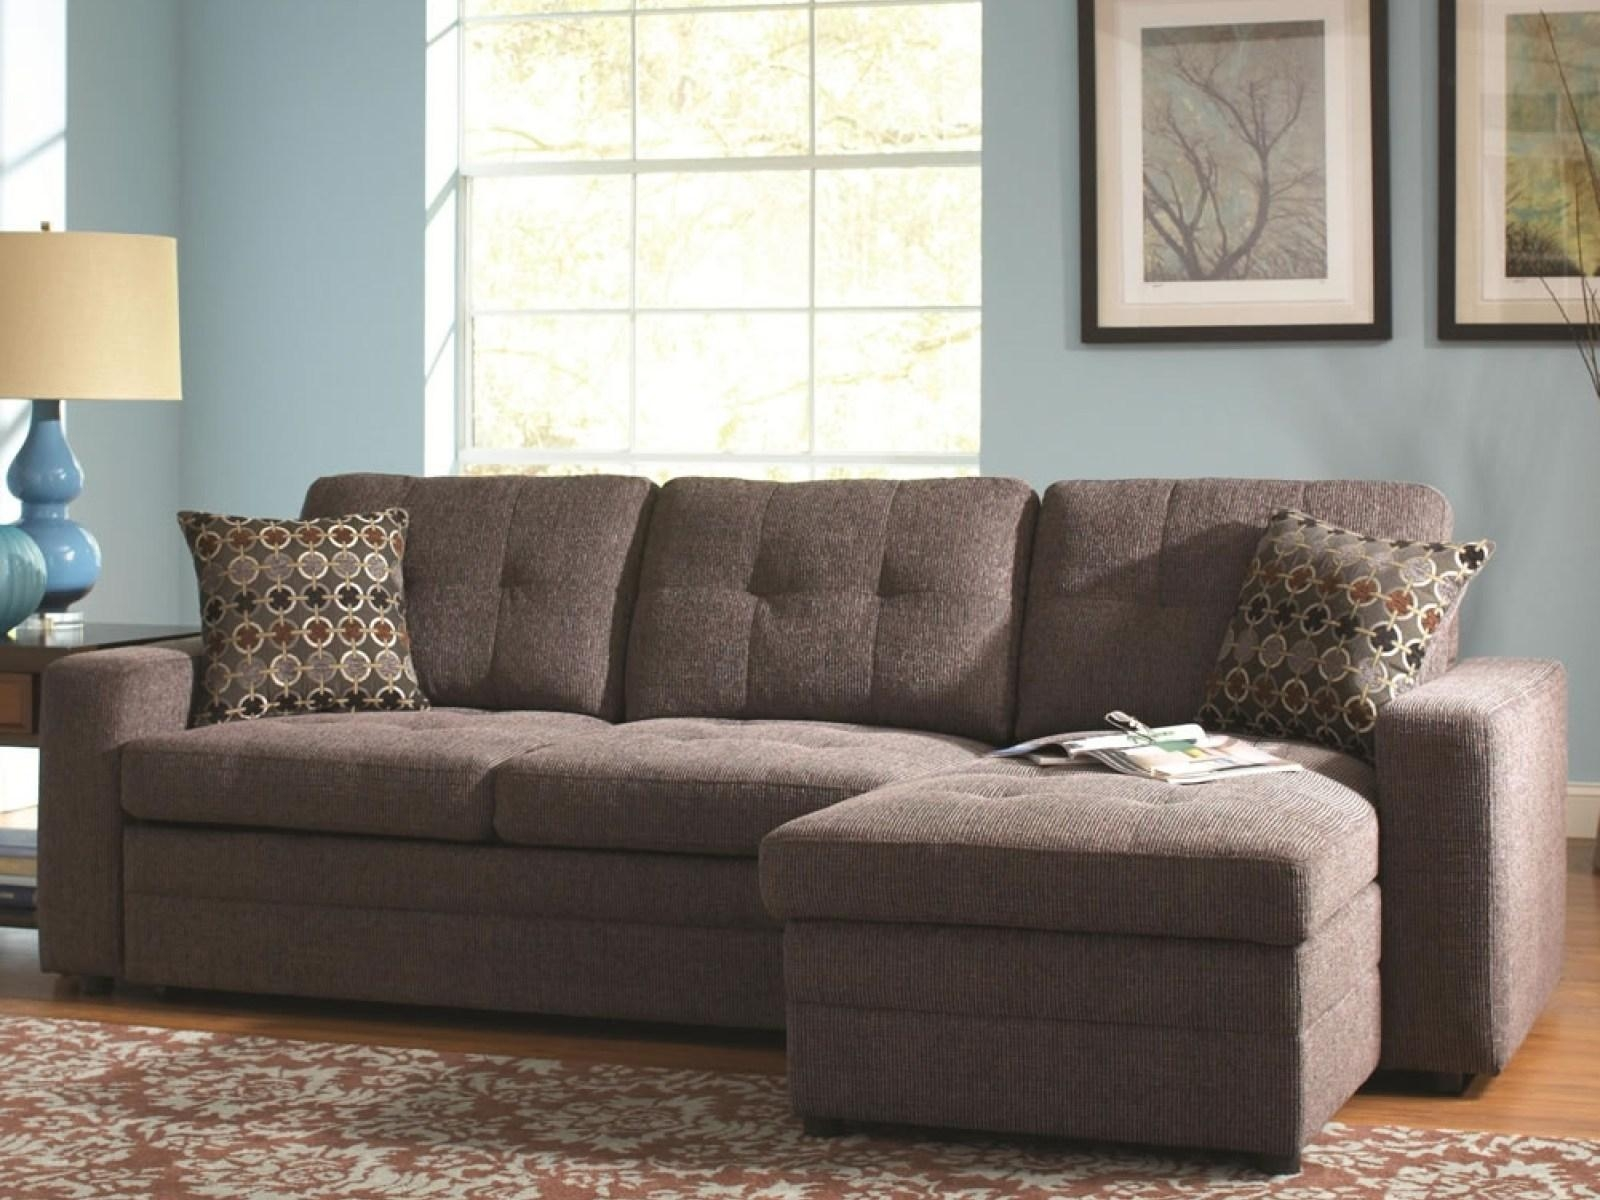 ☆▻ Sofa : 15 Good Looking Reclining Sectional Sofas For Small Throughout Sectional Sofas In Small Spaces (View 13 of 20)